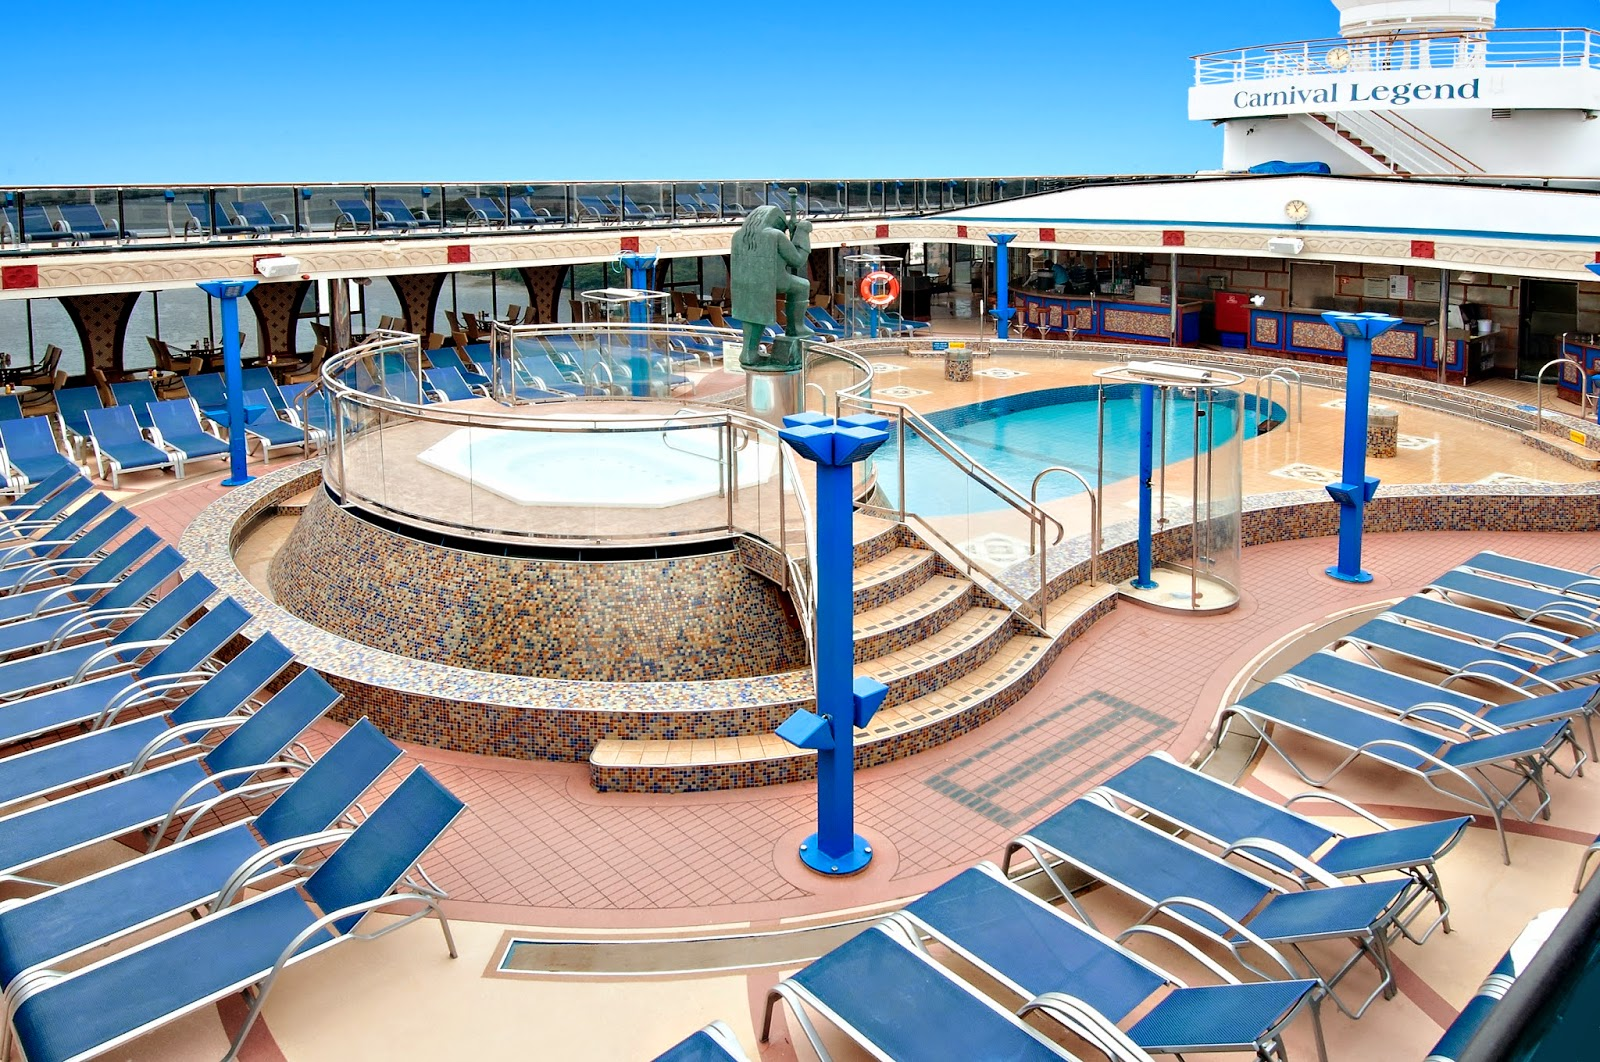 Ray 39 S Cruise Blog Carnival Legend Cruise Review